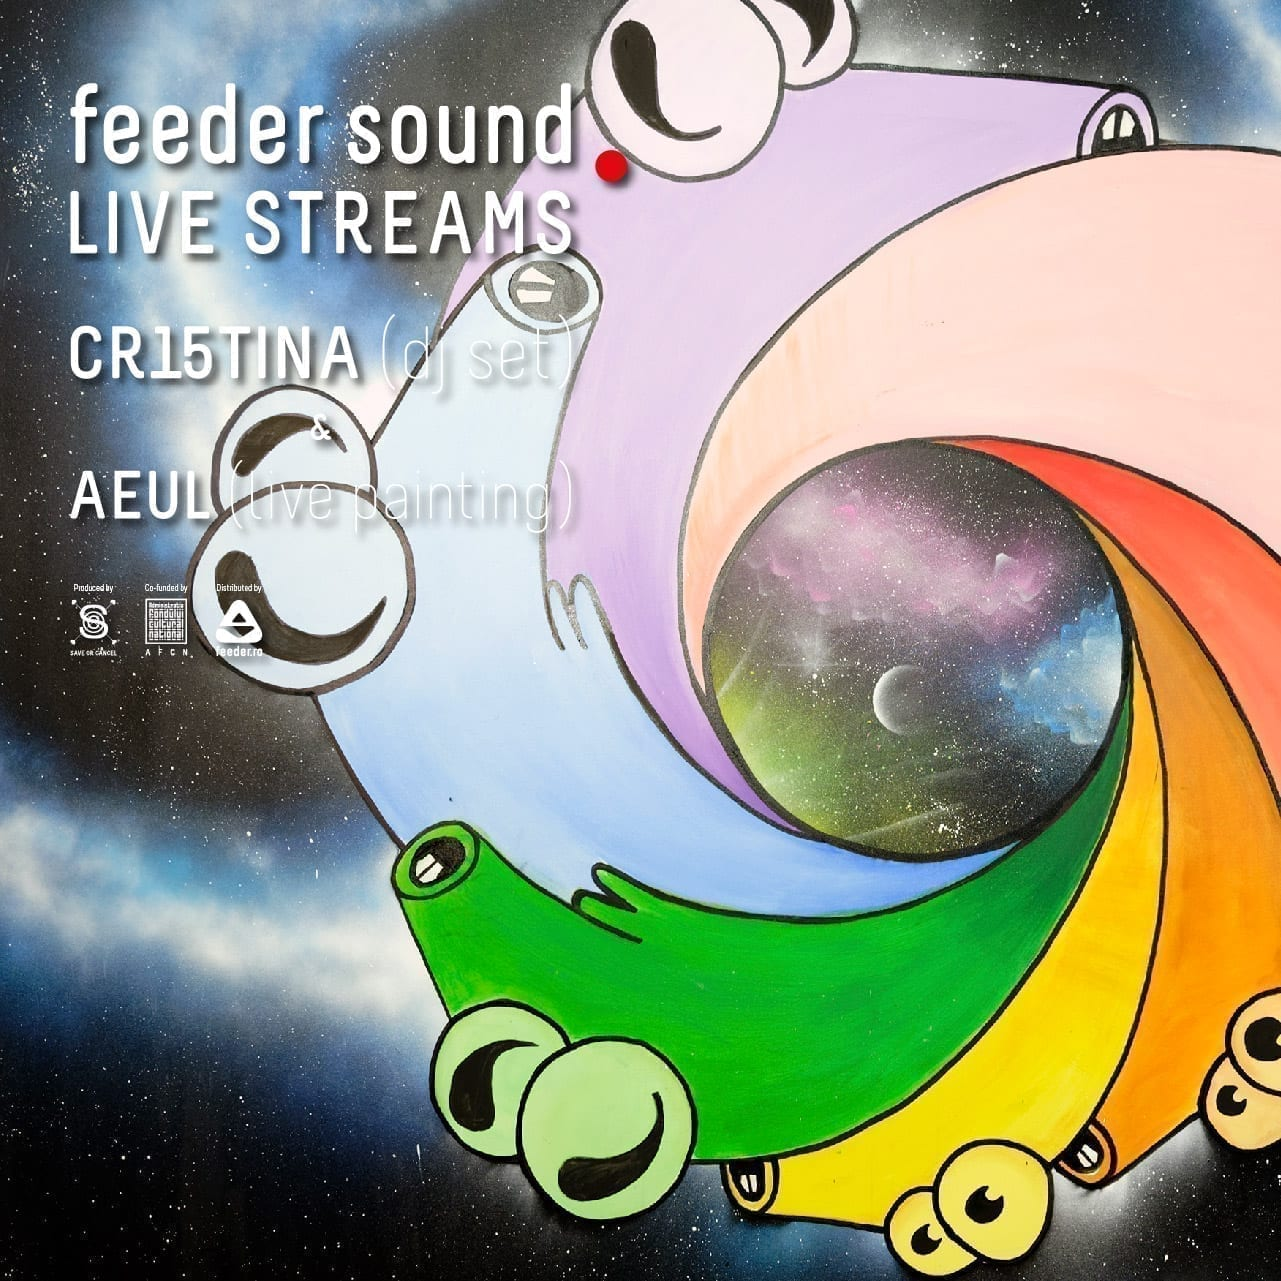 feeder sound LIVE CR15TINA & AEUL